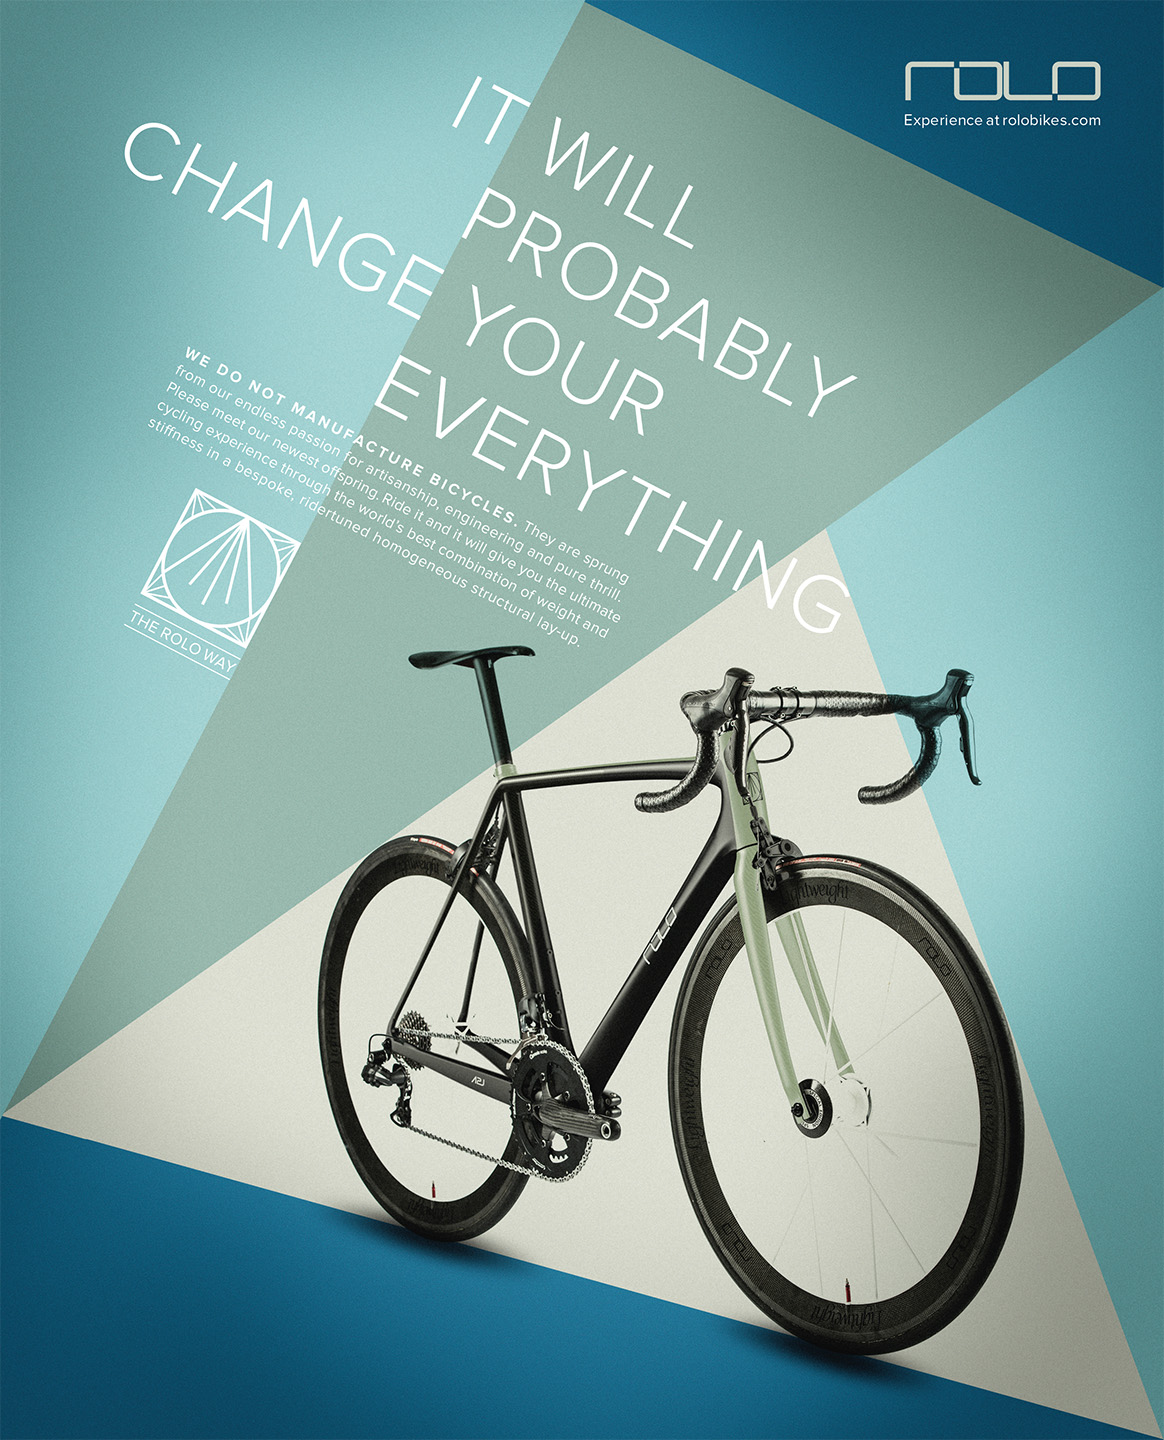 Rolo_AD_Rouleur_New bike_2